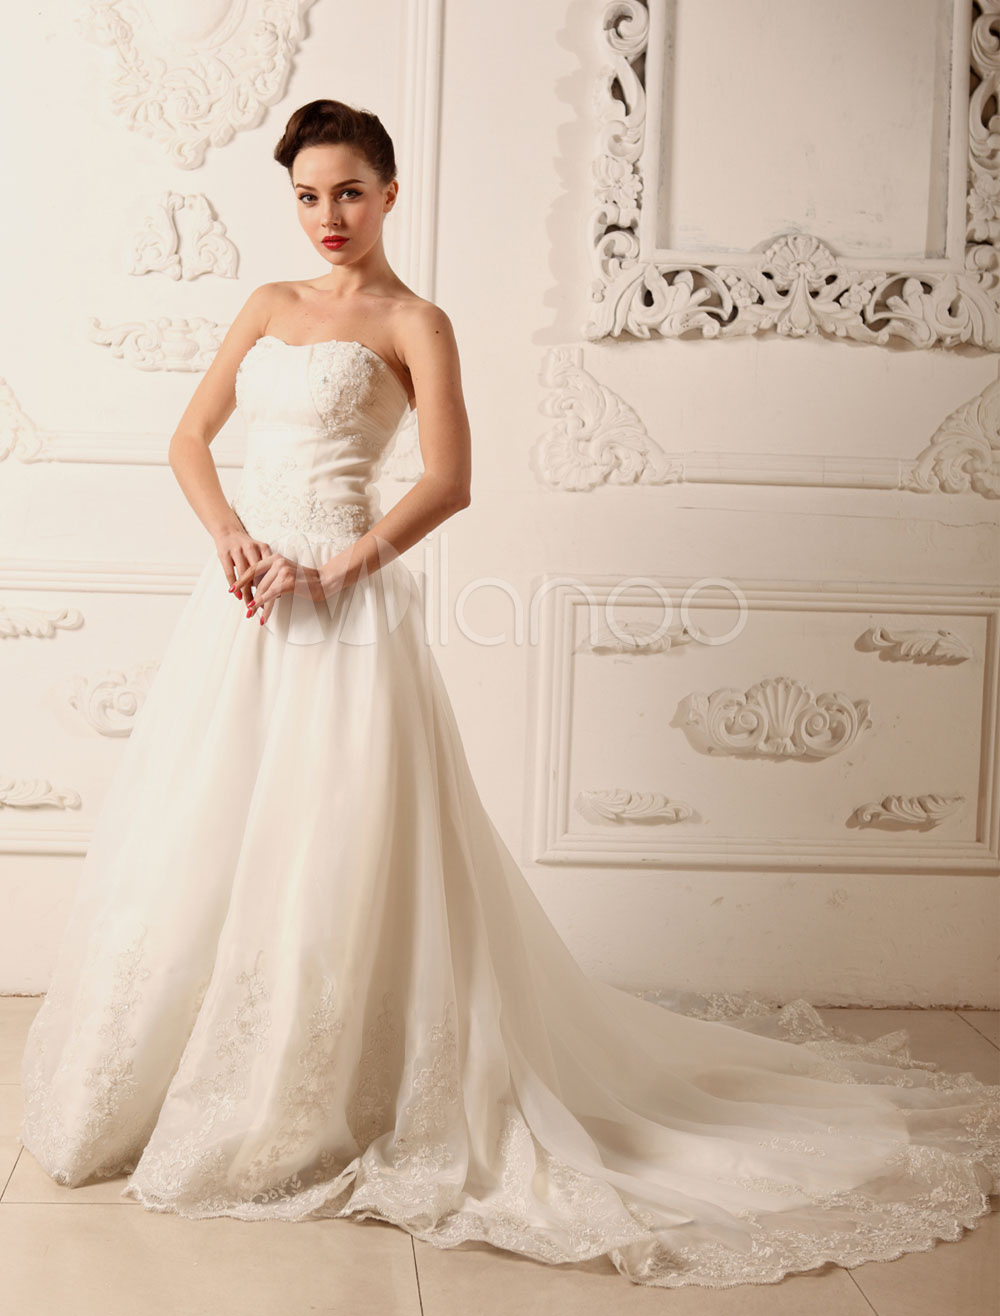 Strapless Wedding Dress A-Line beading Organza Lace Applique Chaple Train Bridal Dress